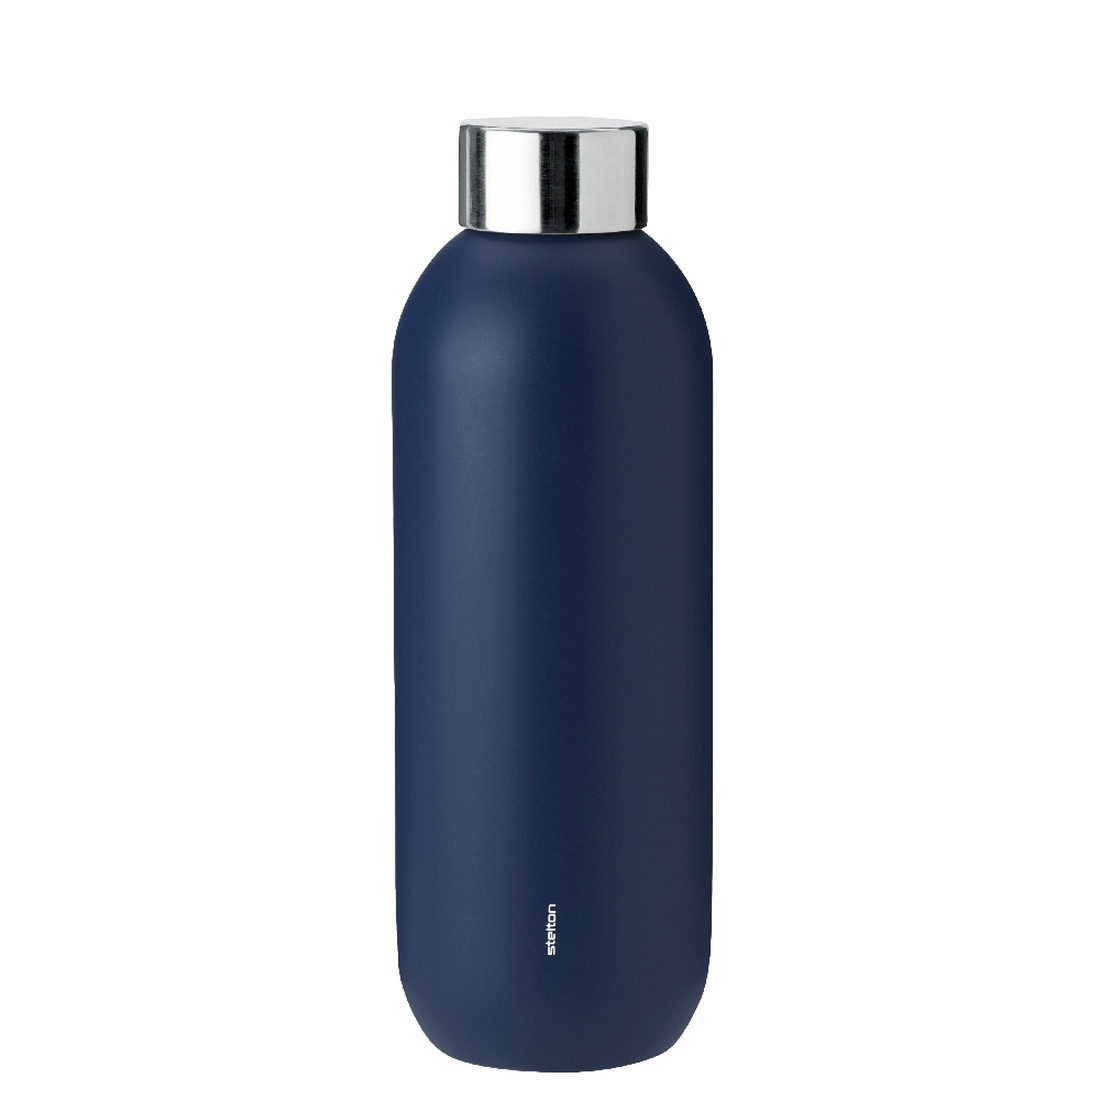 Keep Cool Thermosflasche 0.6 l - midnight blue by stelton